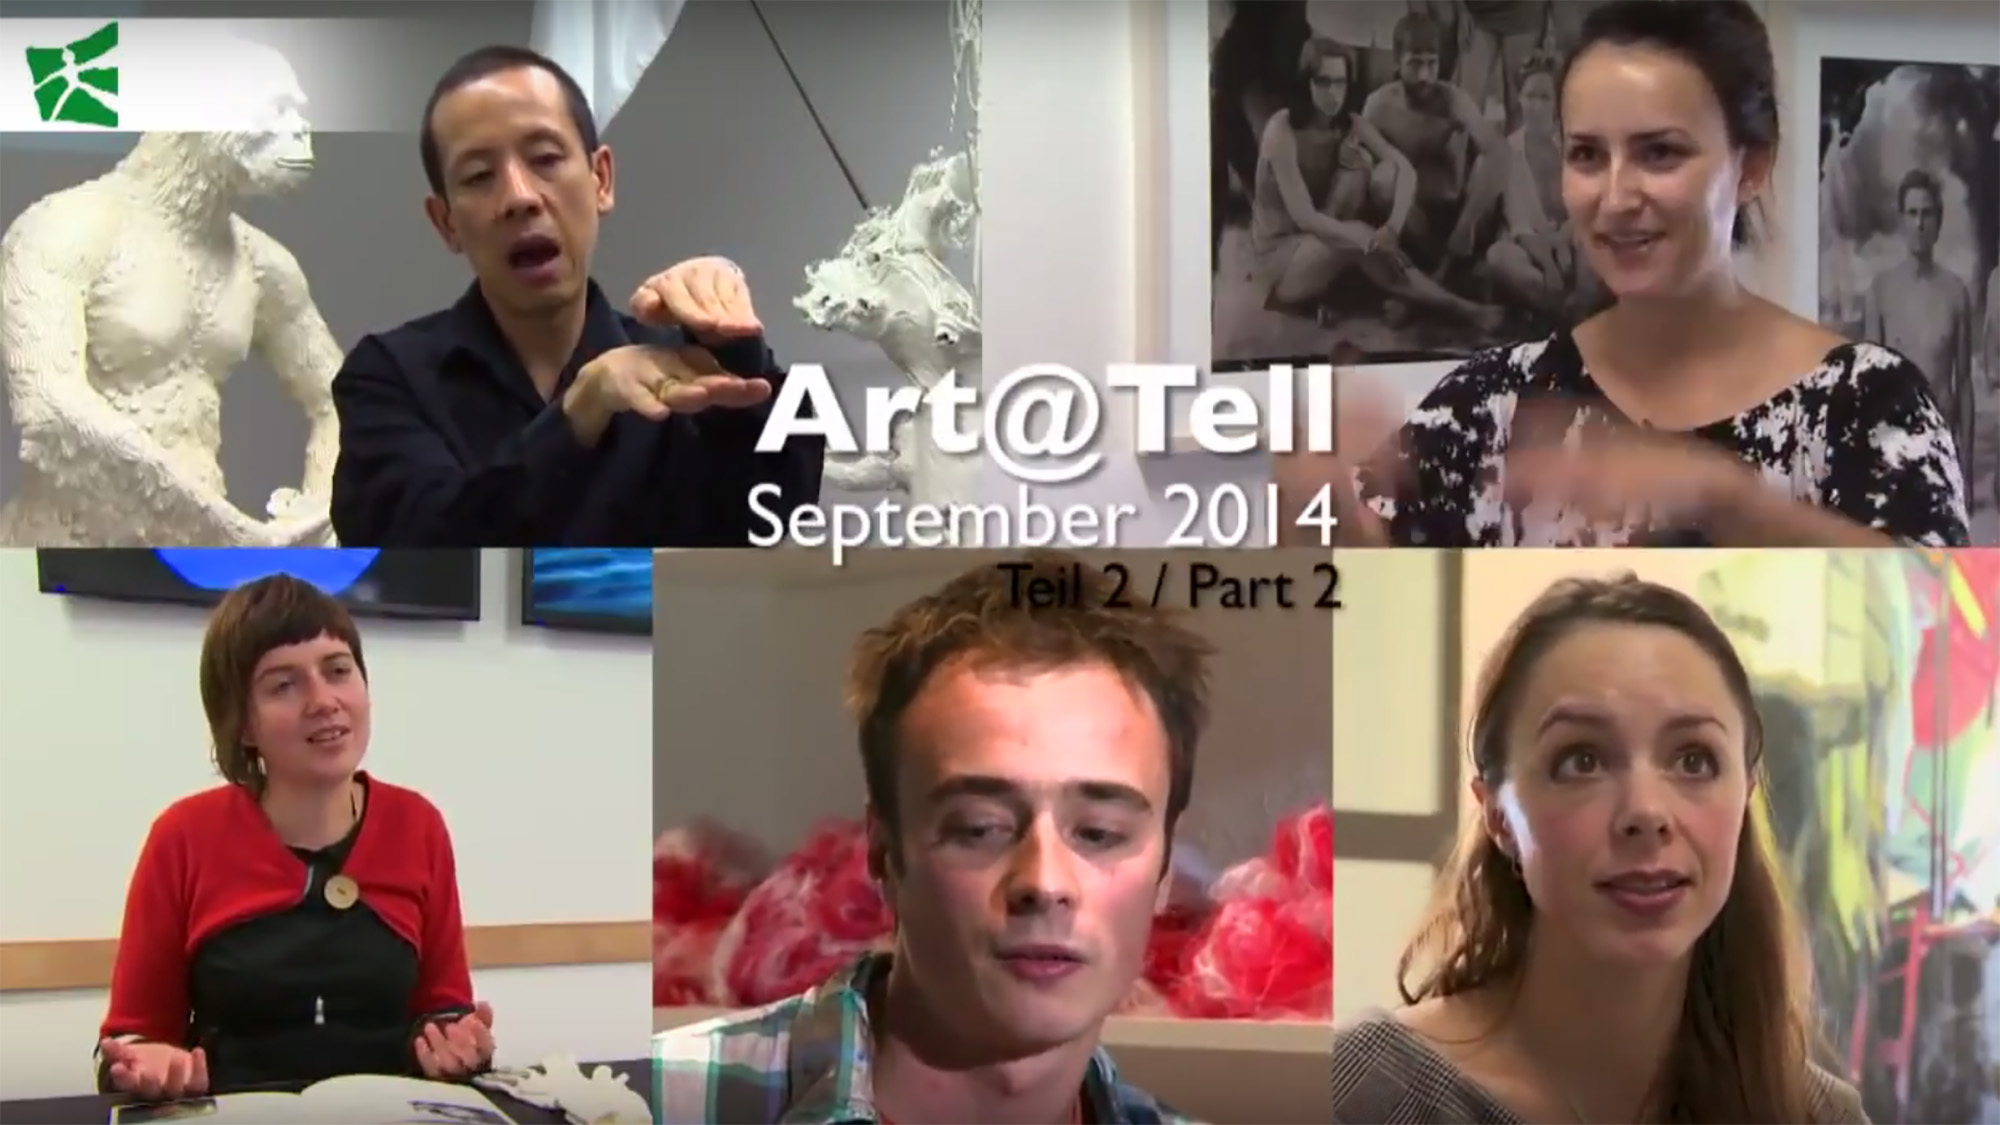 art at tell, video 2014 part 2